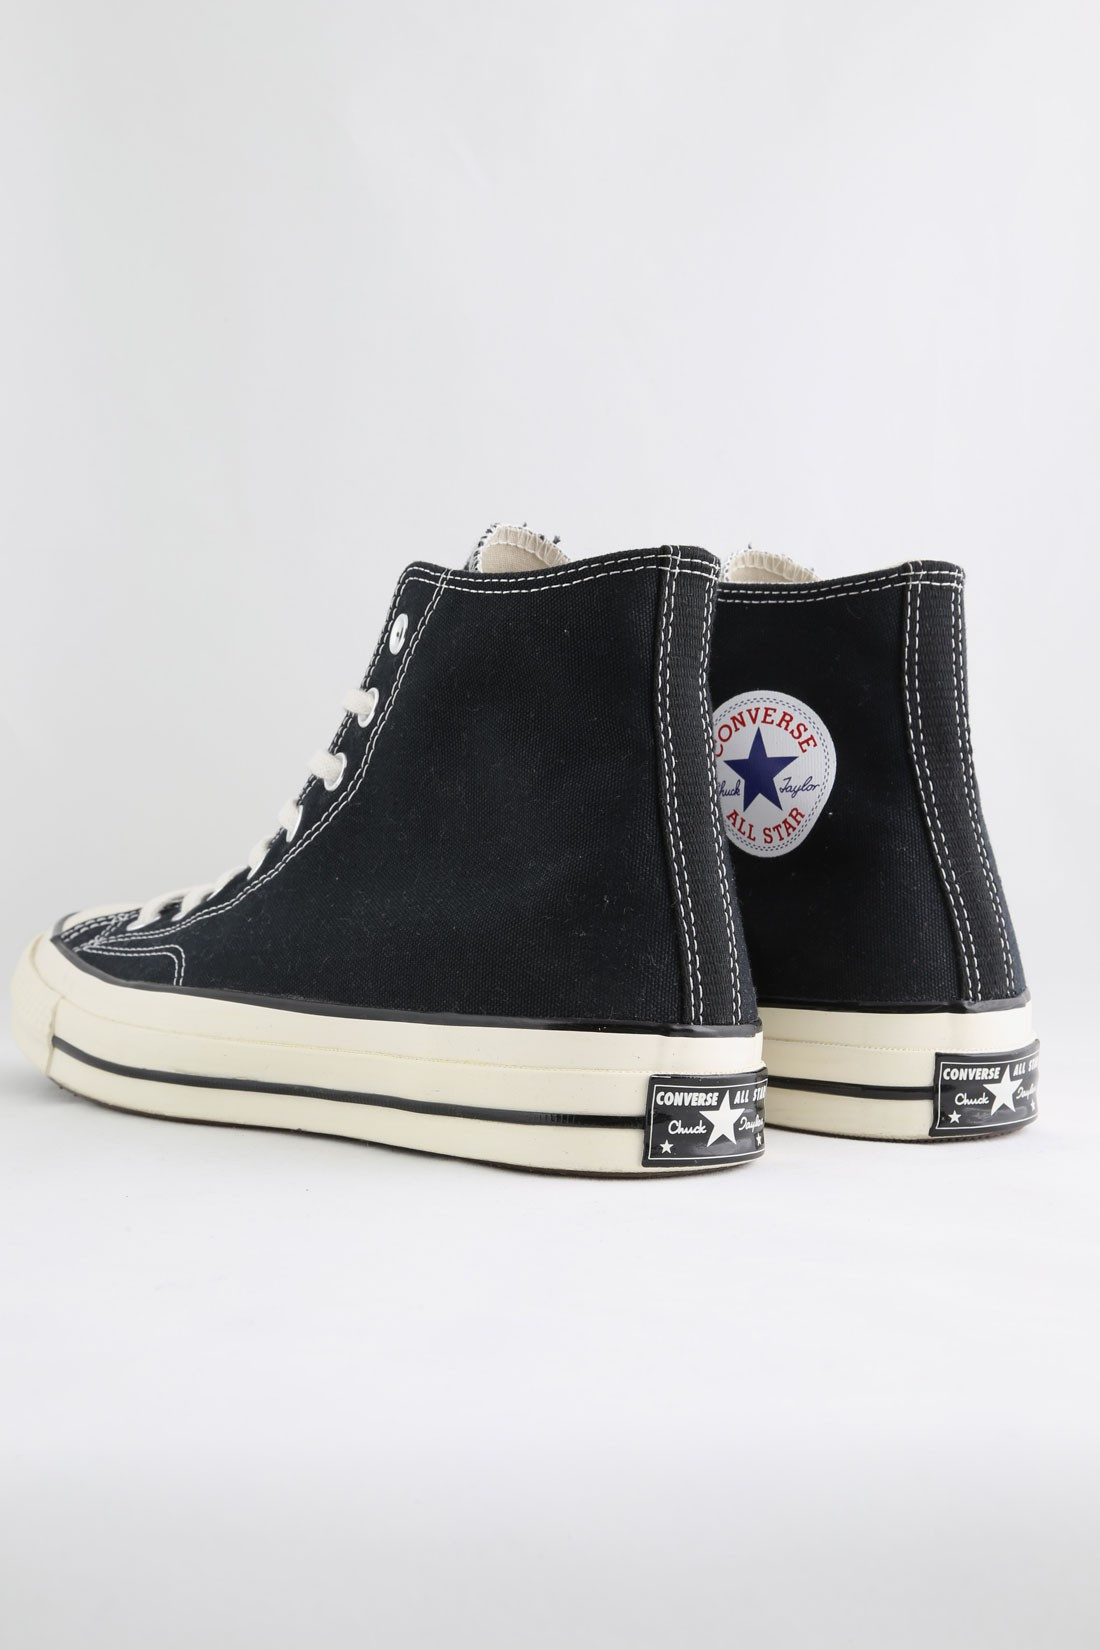 differently 0102d 2e100 CONVERSE   Ct 70 s hi Black ...